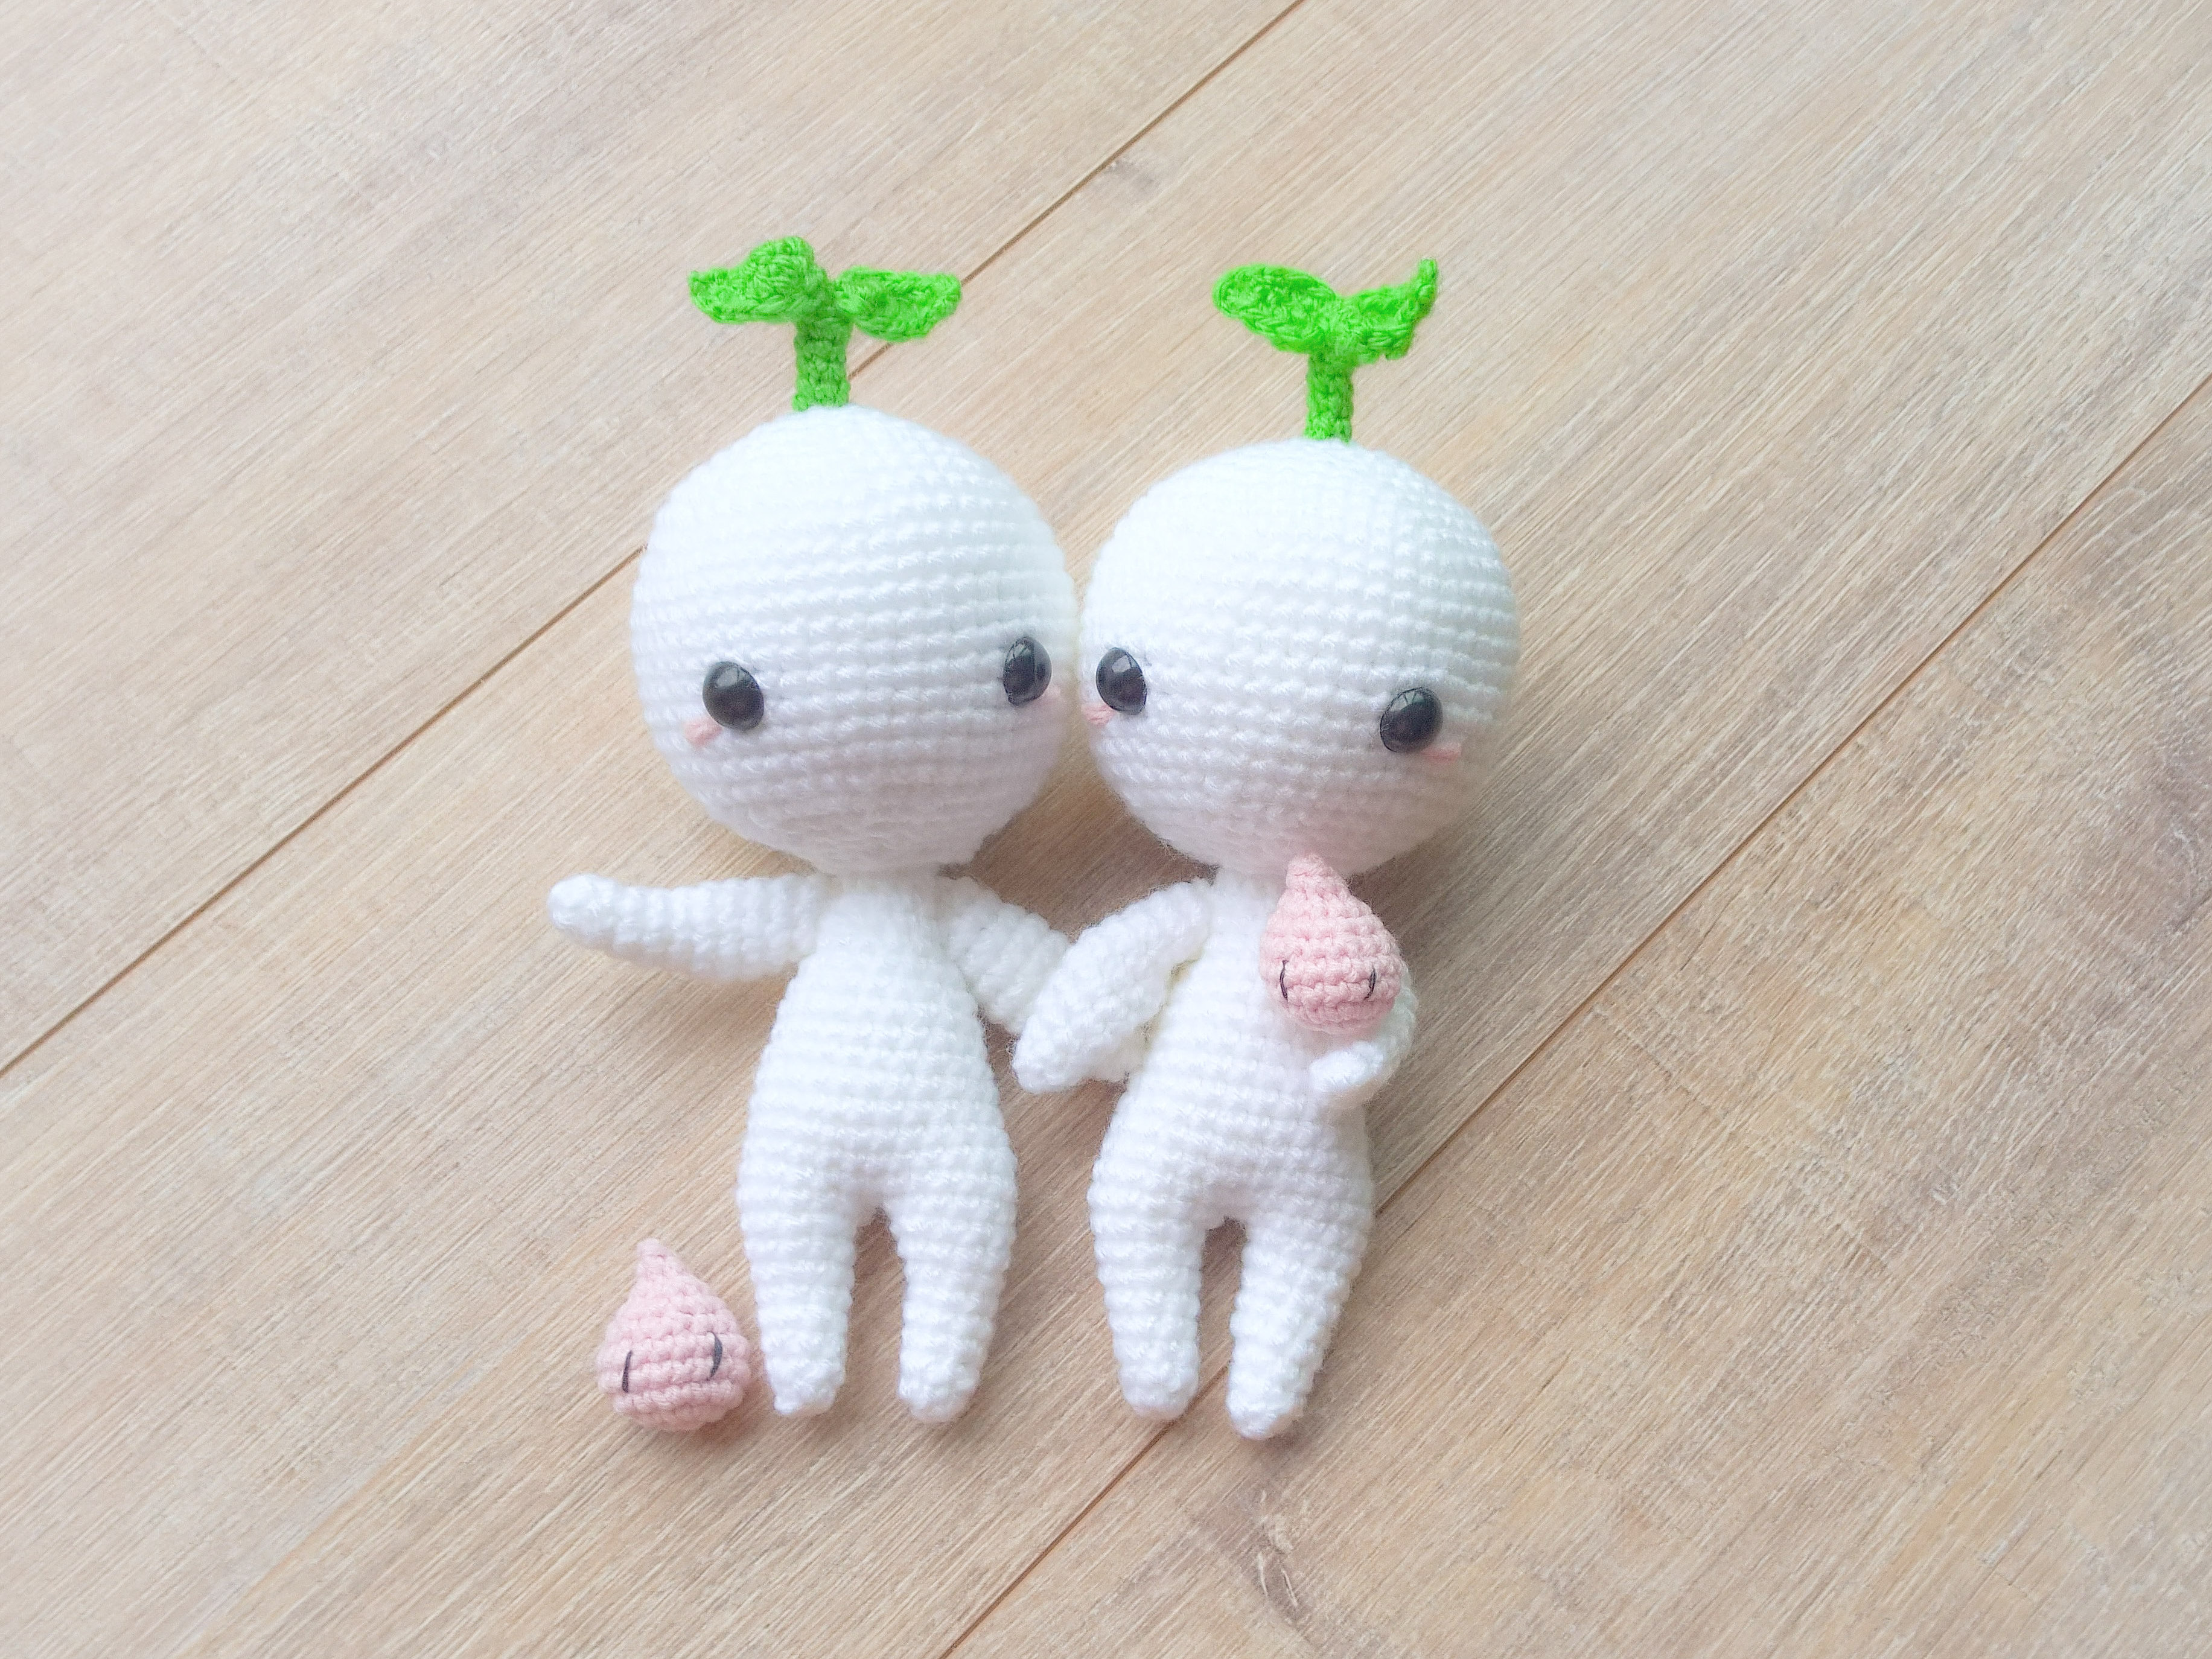 Amigurumi Chibi Doll : Home; dollmaker of crocheted happy plushies baby turnip with